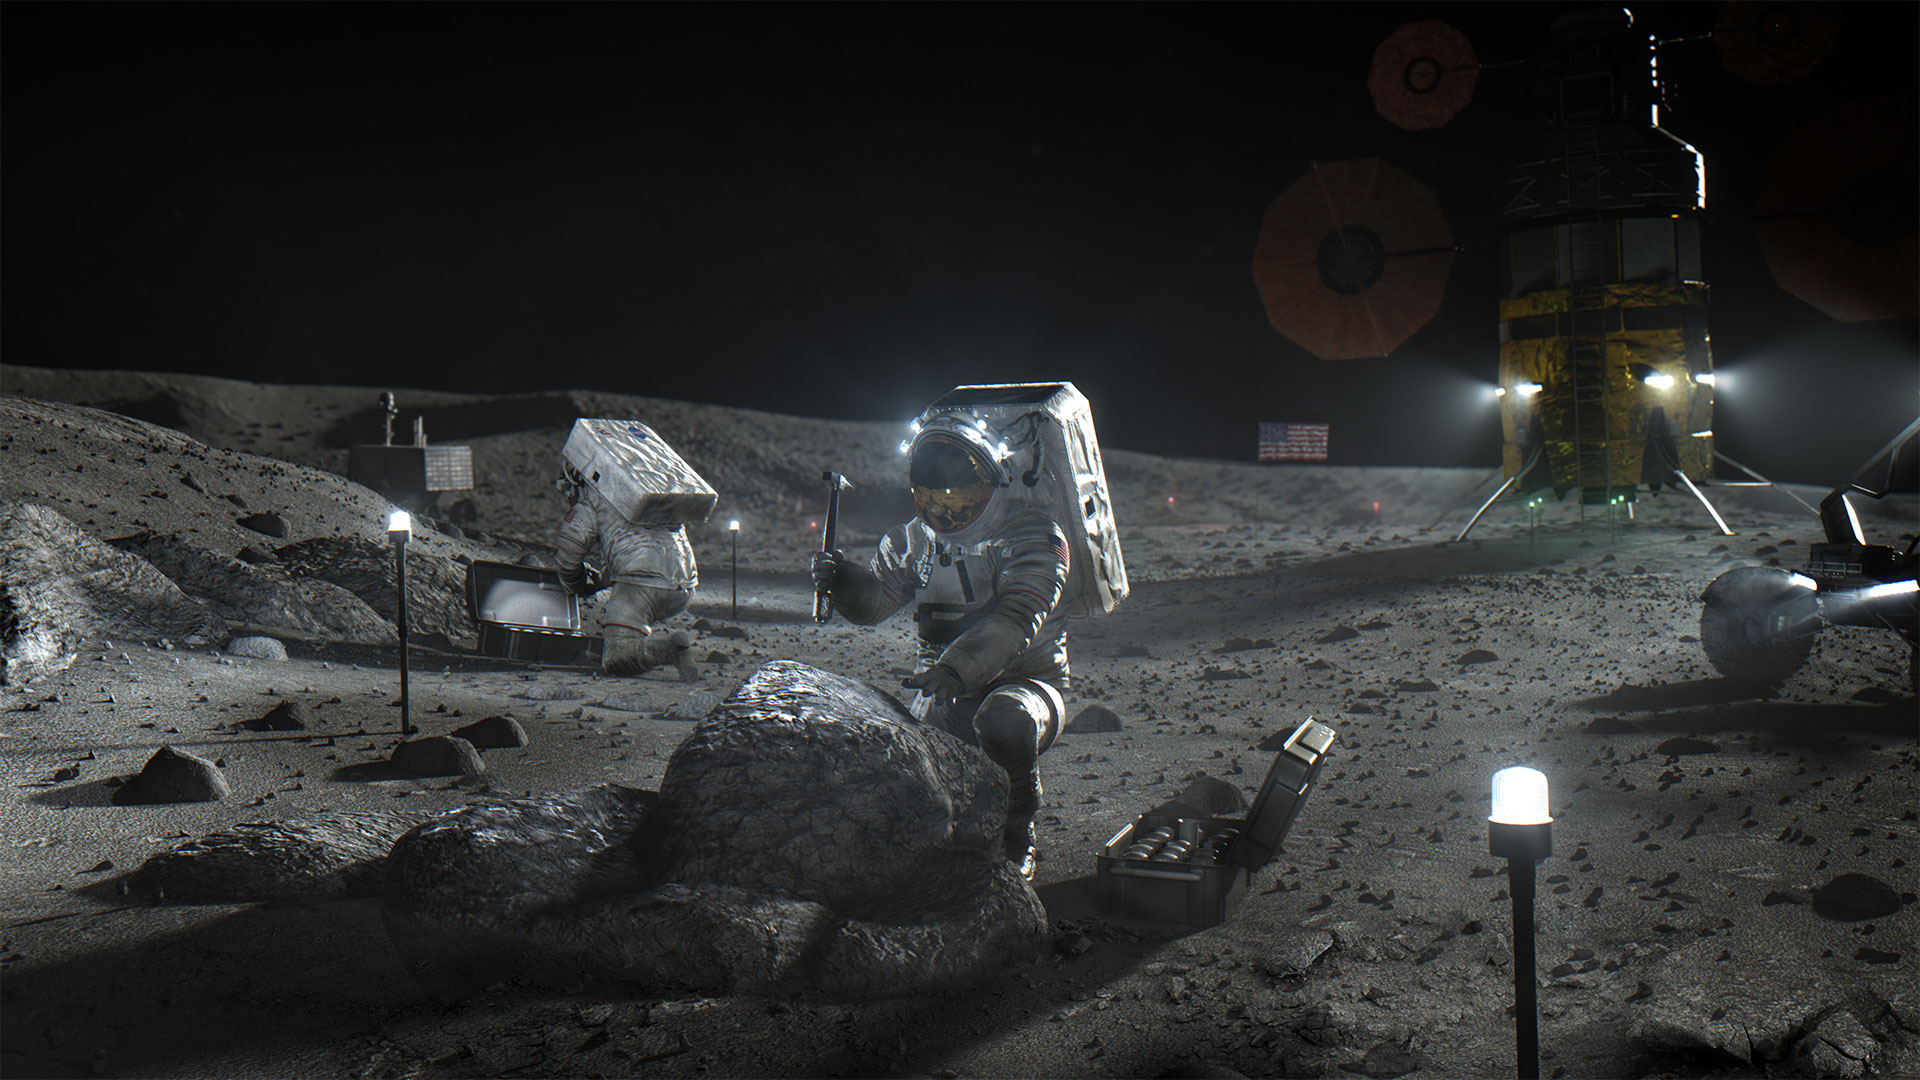 How to build a Moon base using local resources